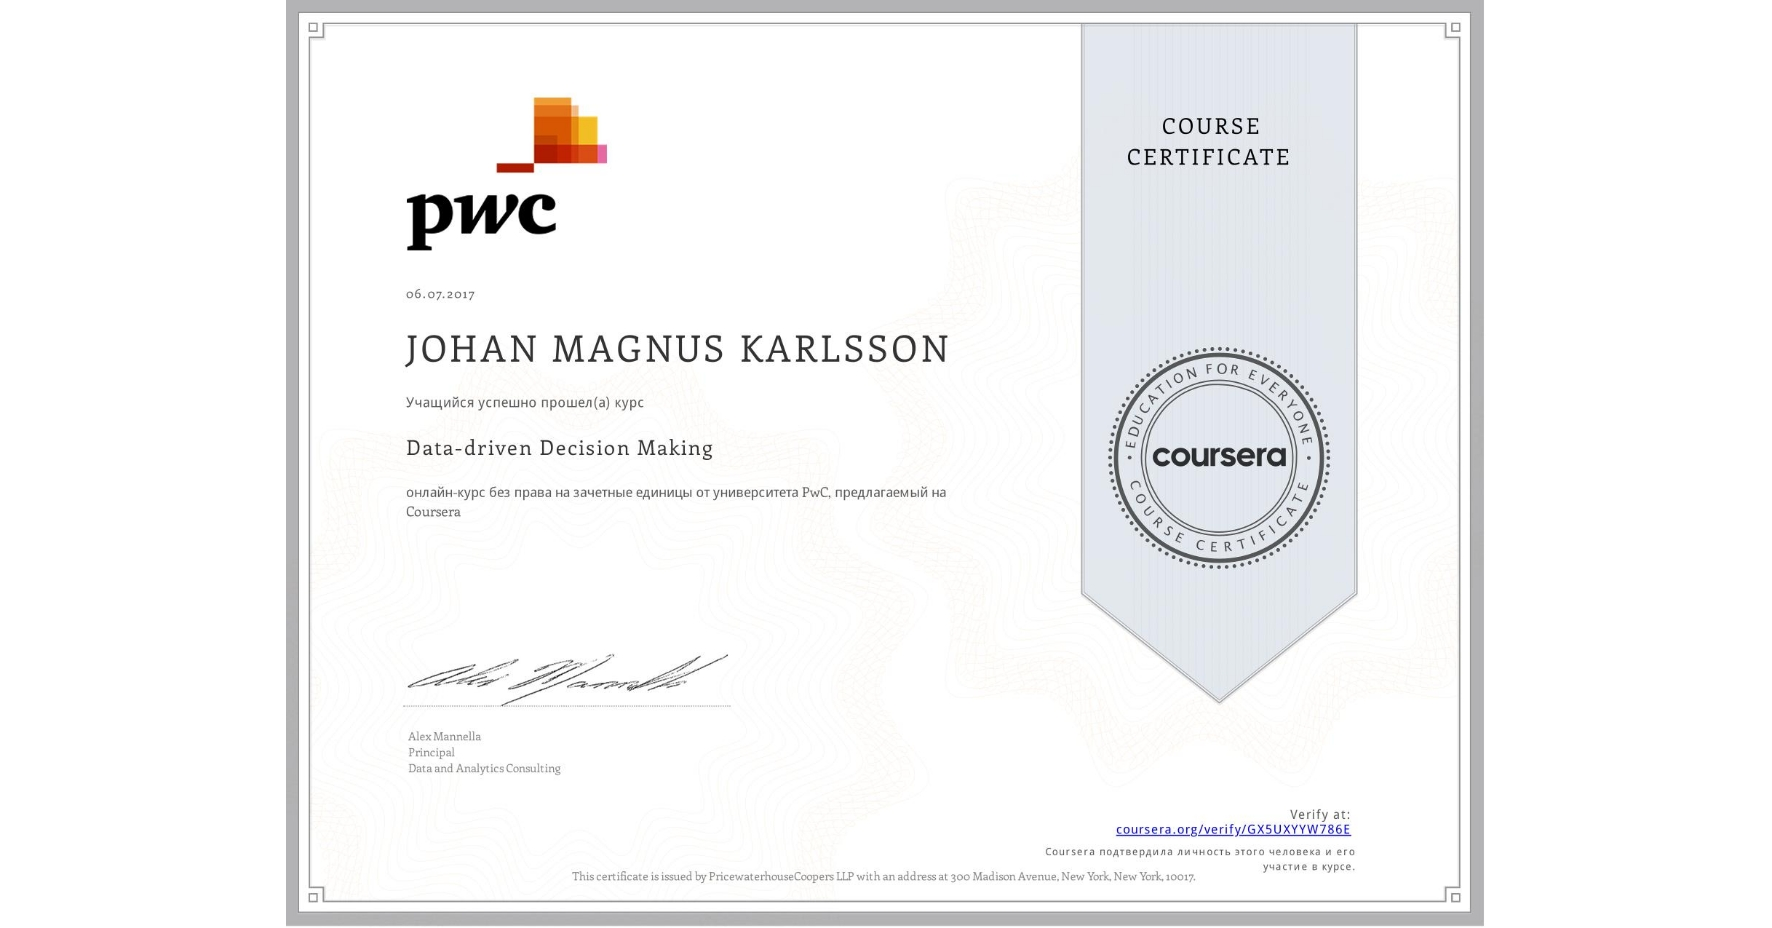 View certificate for JOHAN MAGNUS  KARLSSON, Data-driven Decision Making, an online non-credit course authorized by PwC and offered through Coursera